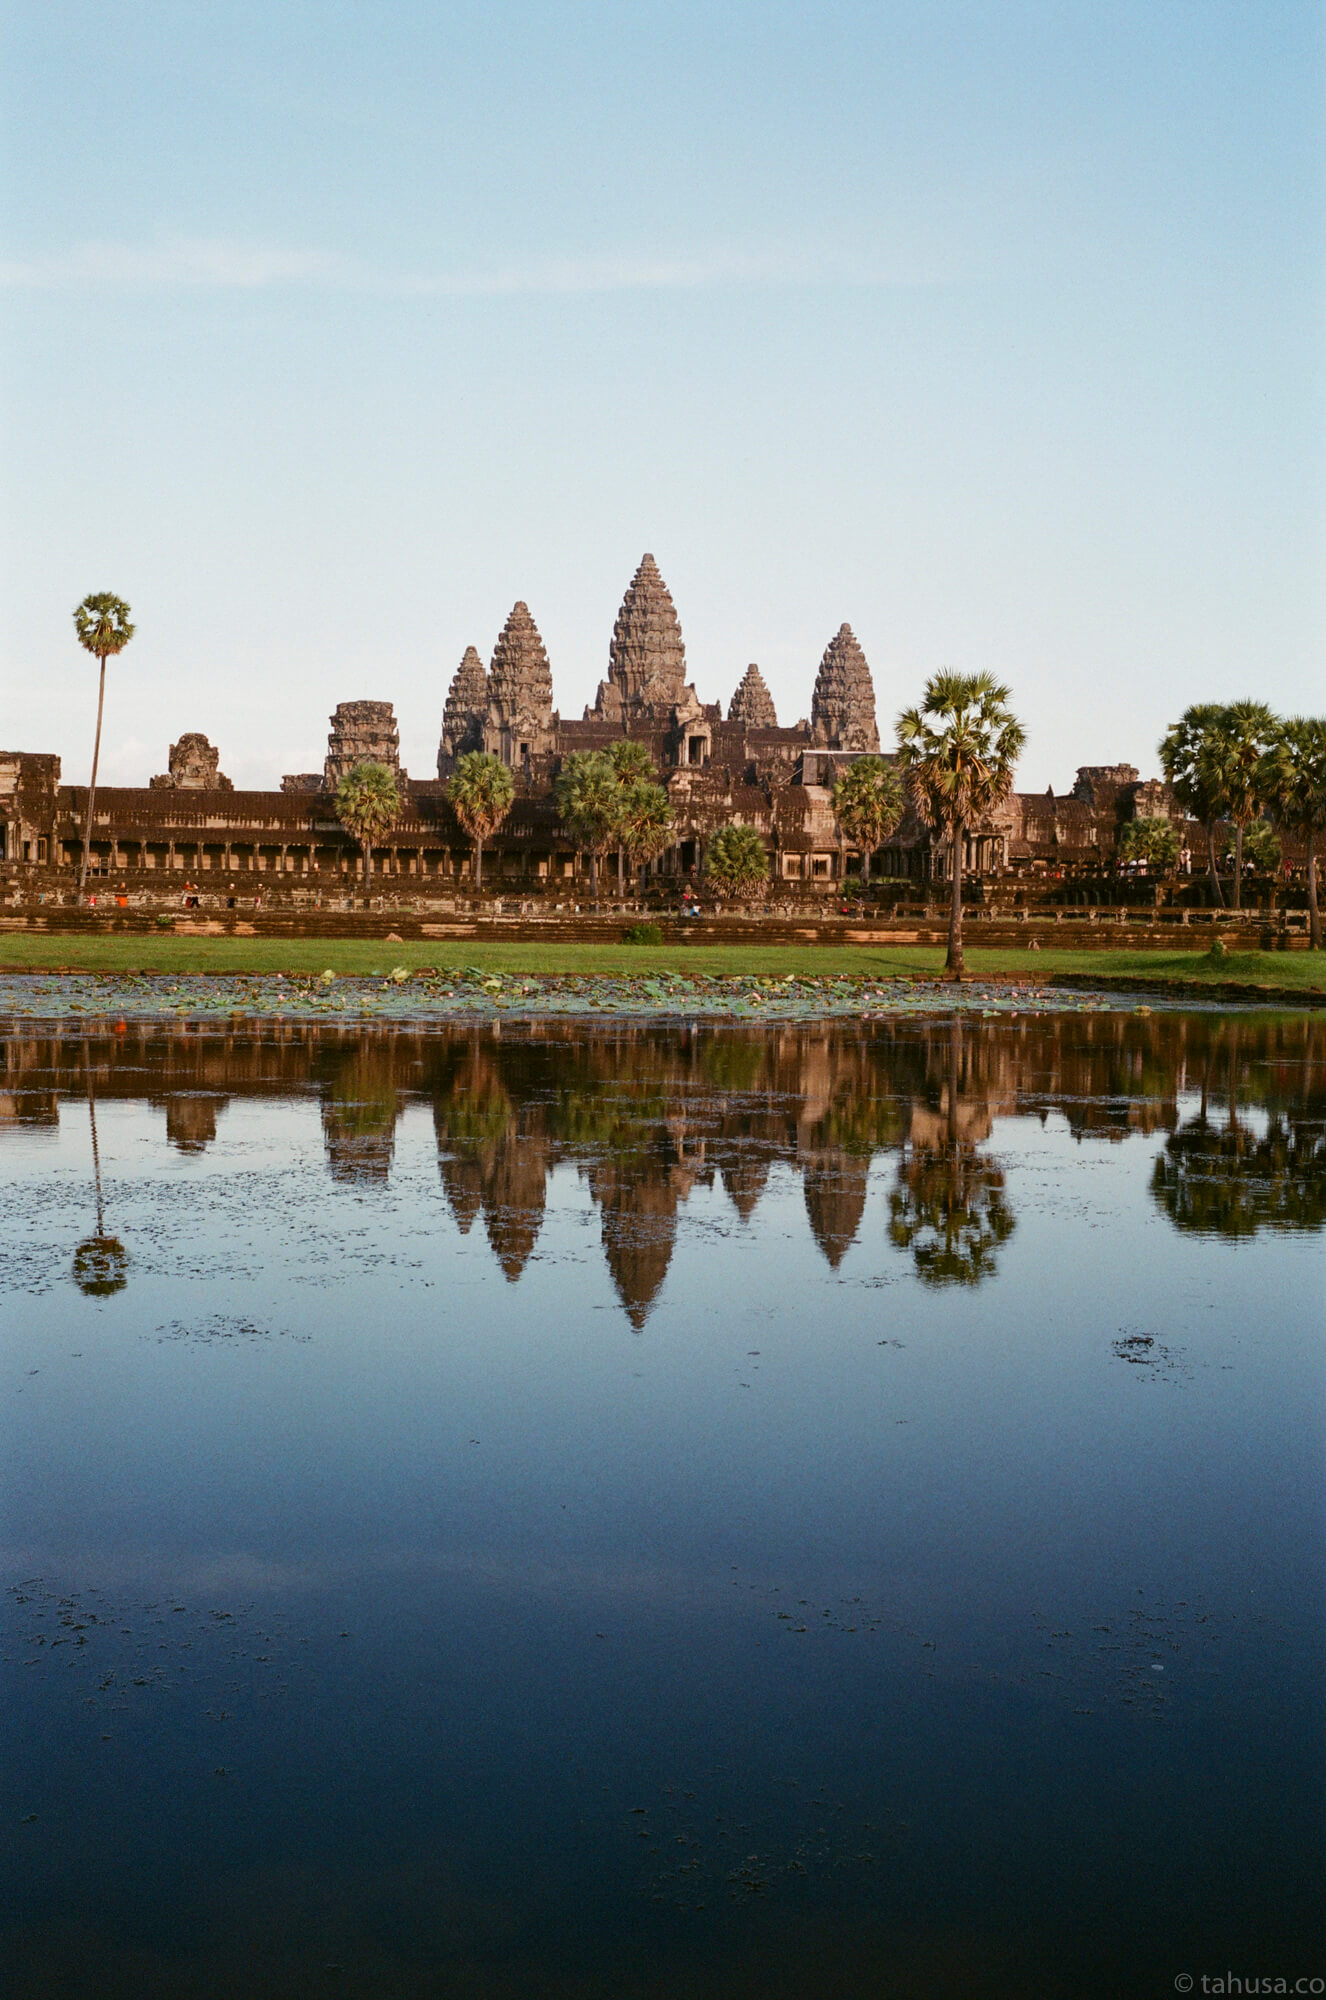 standard-view-of-angkor-wat-small-cambodia-angkor-siem-reap-south-east-asia-travel-travelling-street-snap-using-leica-m2-summicron-35mm-f2-v1-8elements-analog-film-is-fuji-fujifilm-superia-premium-400-iso400